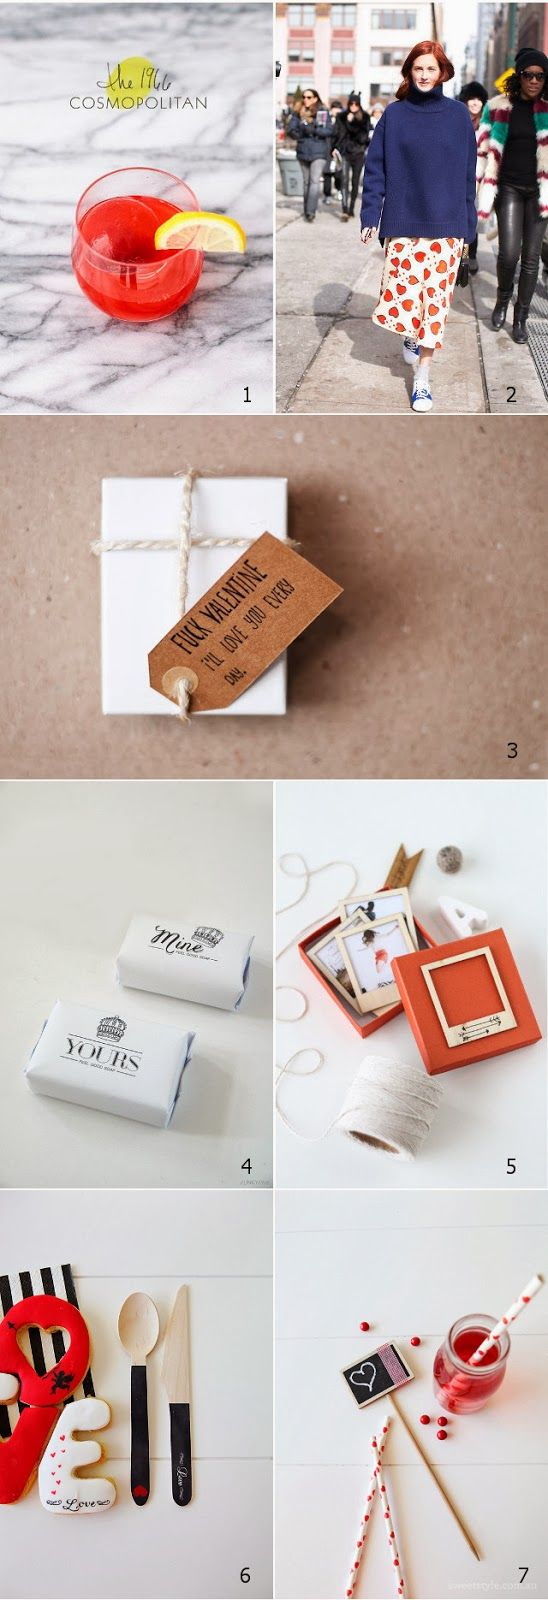 Valentine 2014 - DIY and some unconventional ideas via LAUsNOTEbook